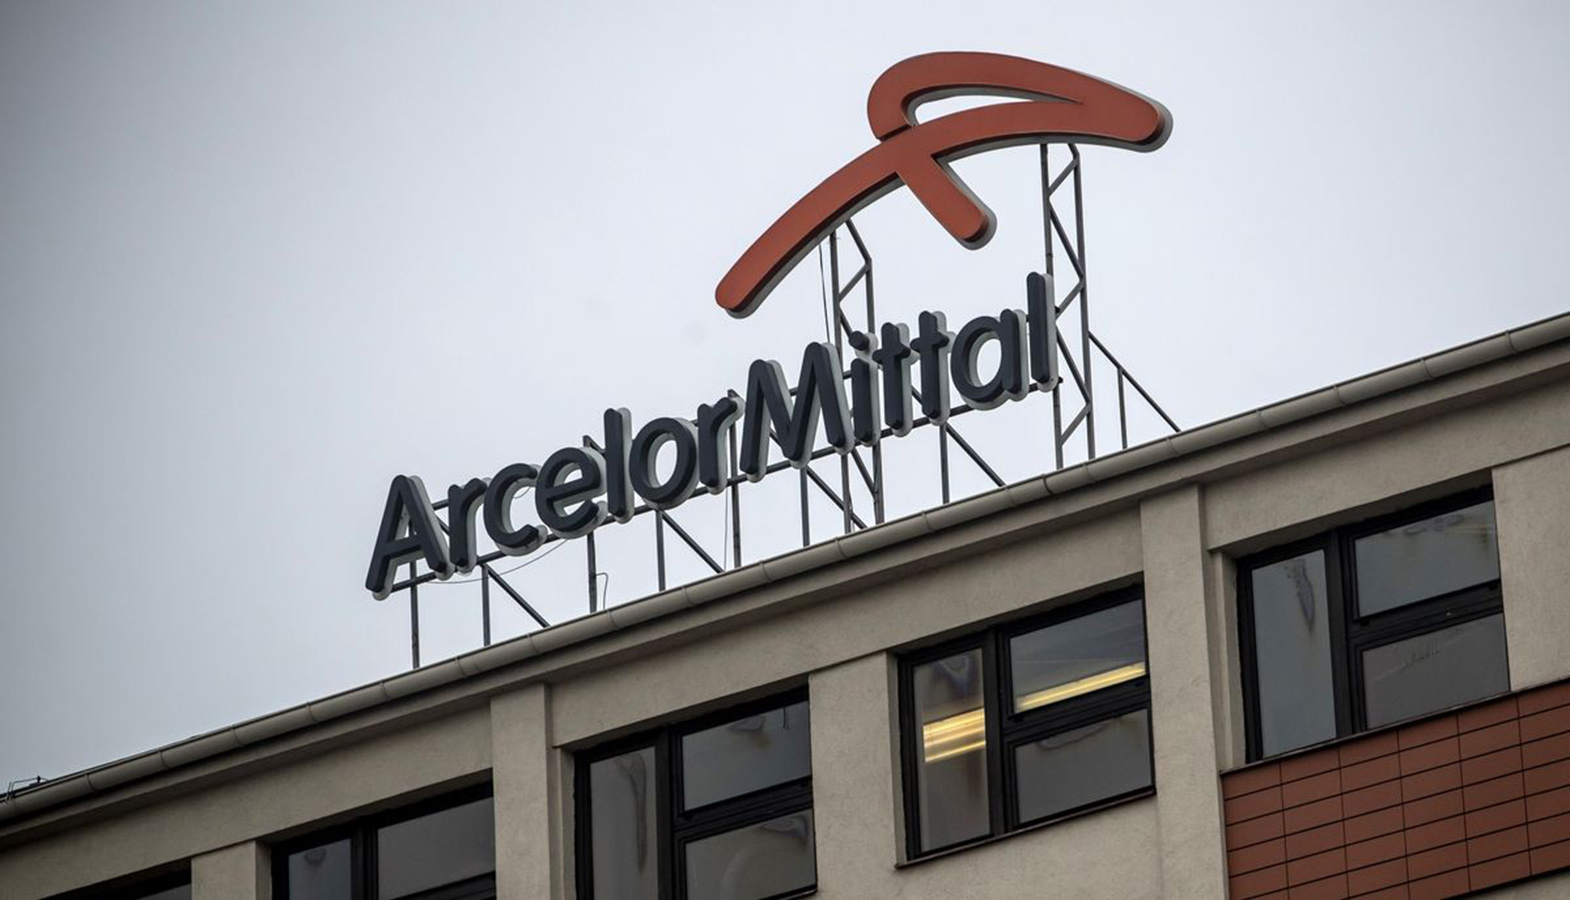 Cleveland-Cliffs To Acquire ArcelorMittal's US Business For $1.4 Billion